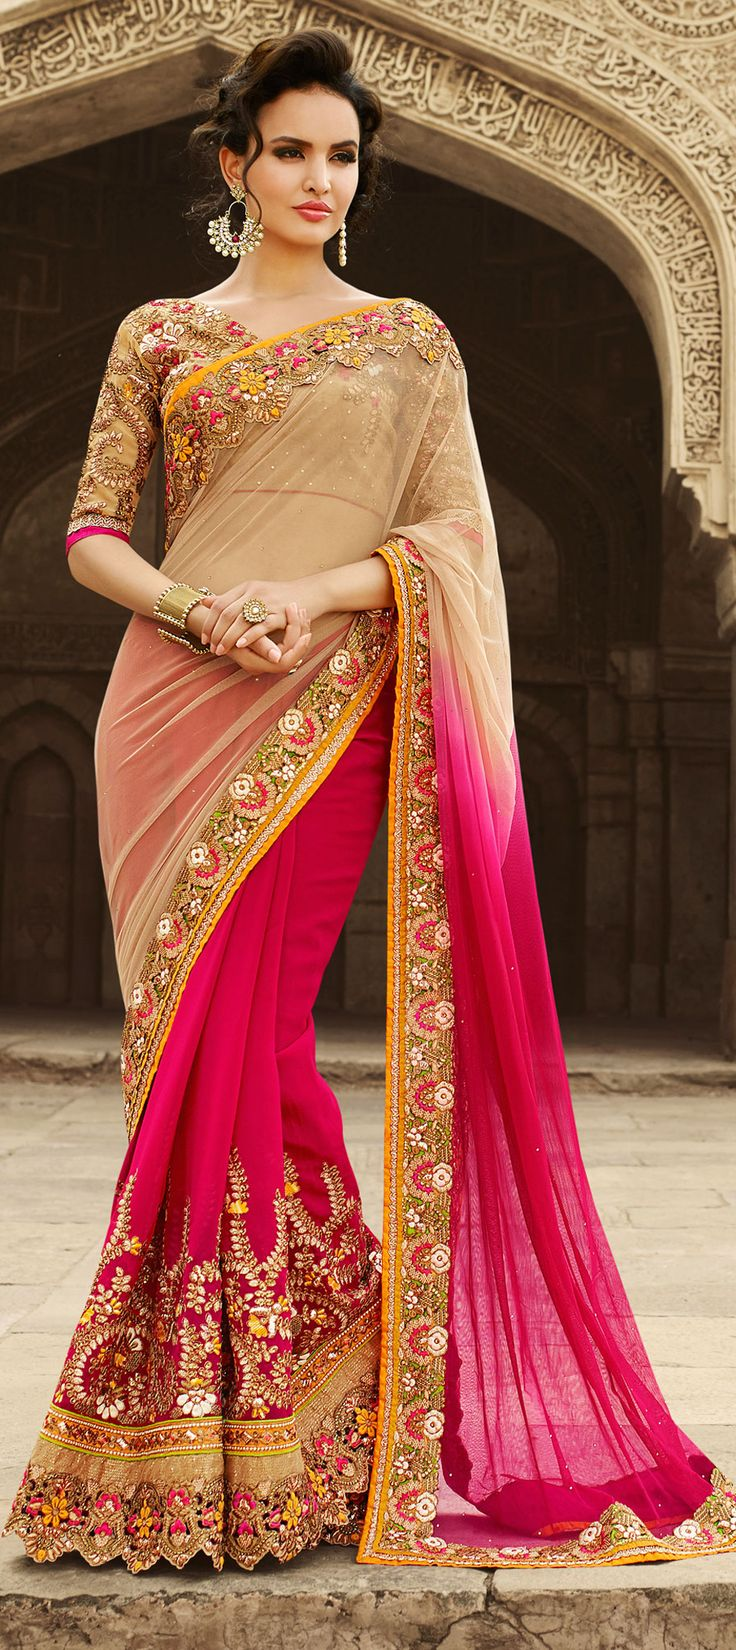 180744 beige and brown pink and majenta color family bridal wedding sarees with matching